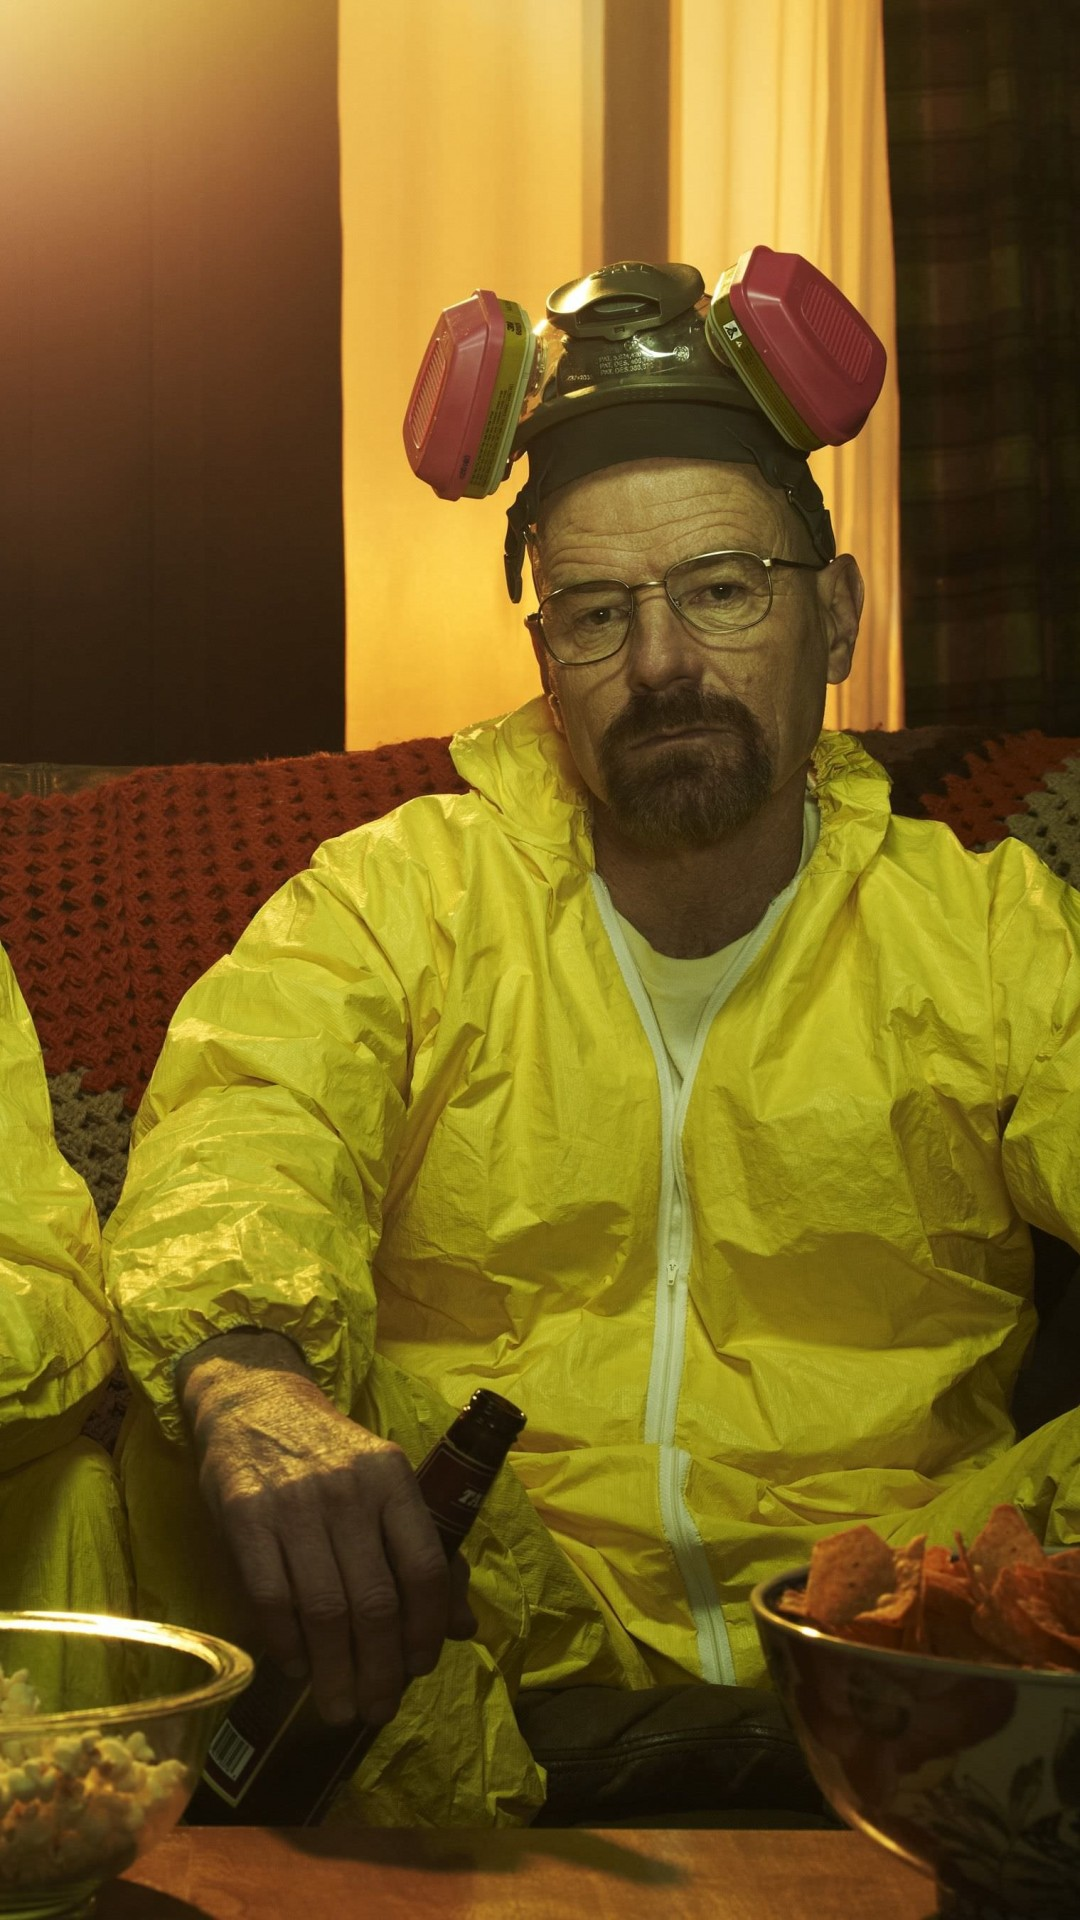 Breaking Bad - Jesse & Walt Drinking Wallpaper for SAMSUNG Galaxy S4